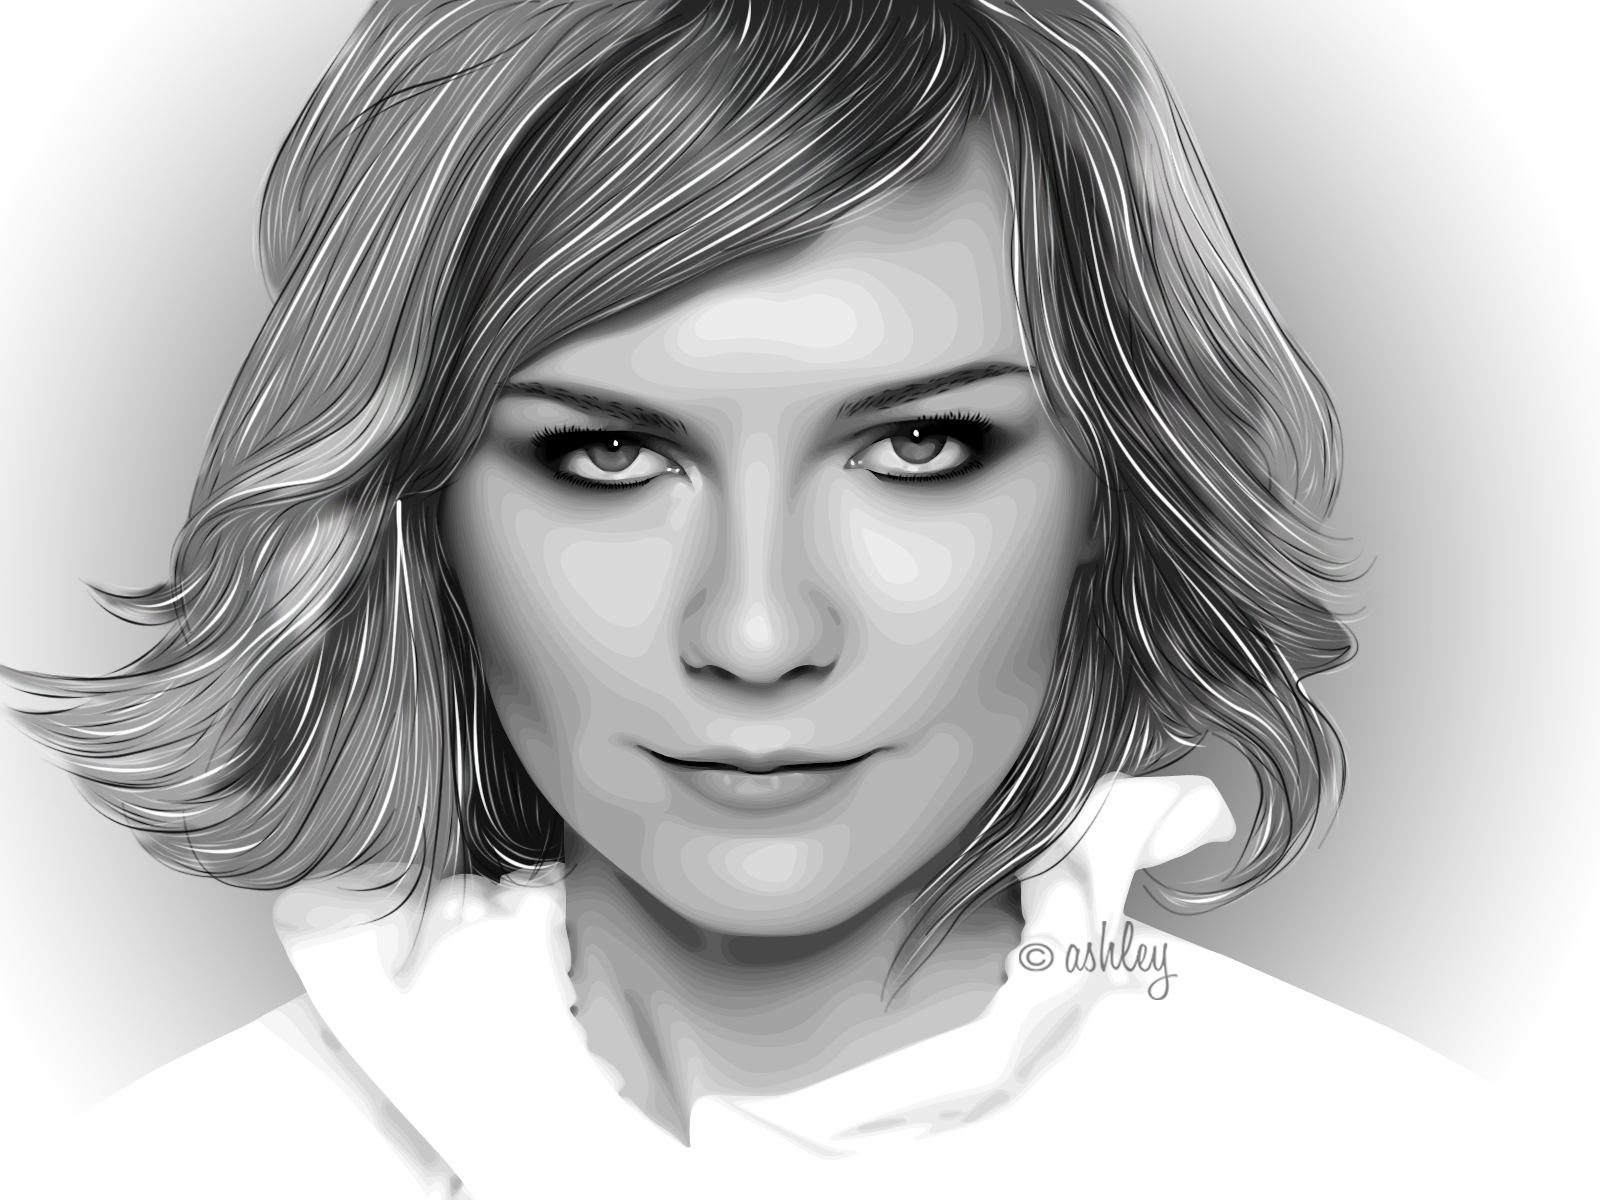 kirsten dunst by ash-becca